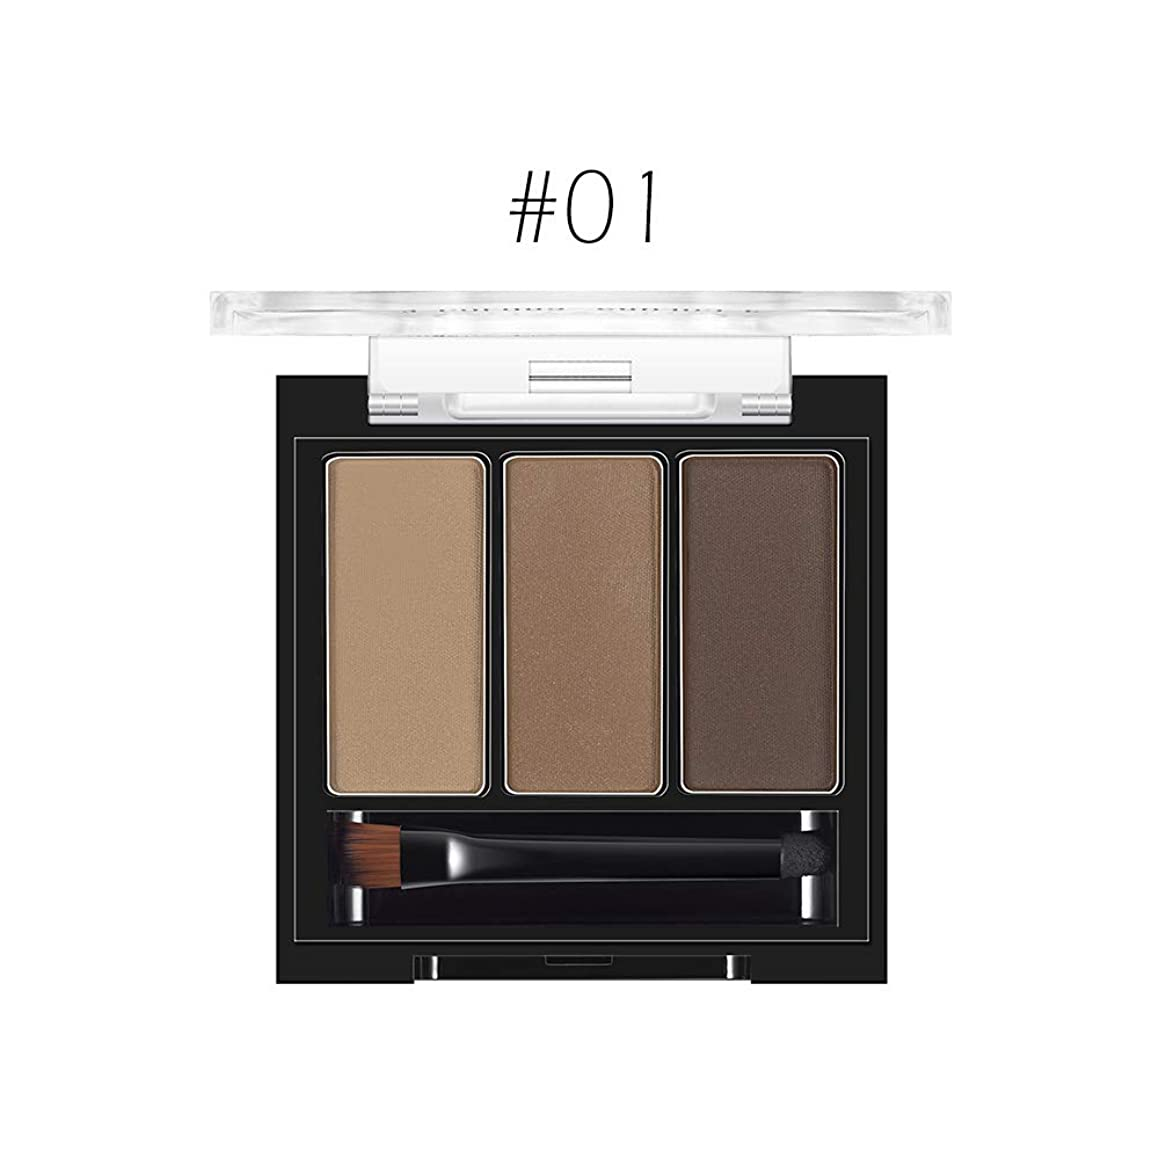 3 Colors In 1 Long- Lasting Water-Proof Eyebrow Powder Makeup Palette Natural Eye Brow Cosmetics